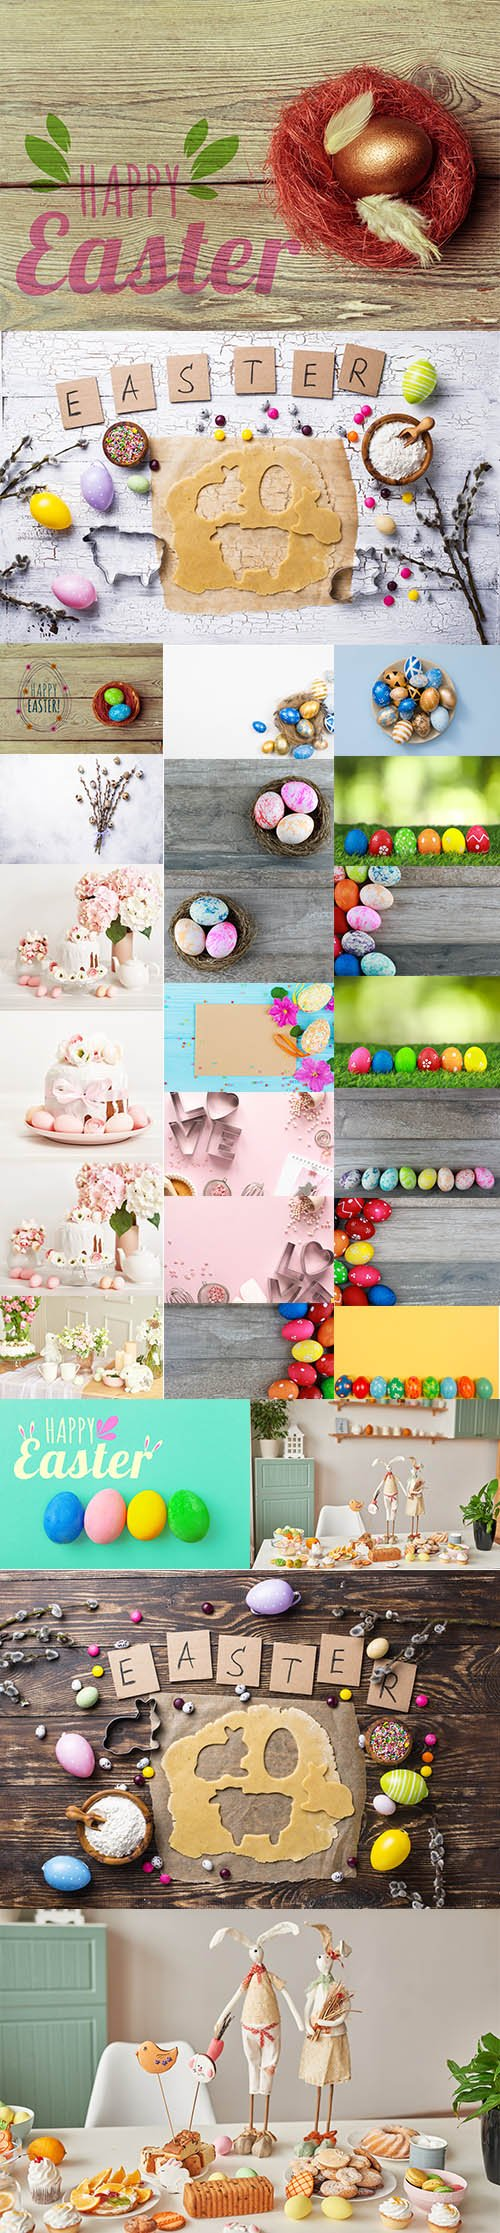 Happy Easter Holiday Decorations Bundle - Premium UHQ JPEG Stock Photo